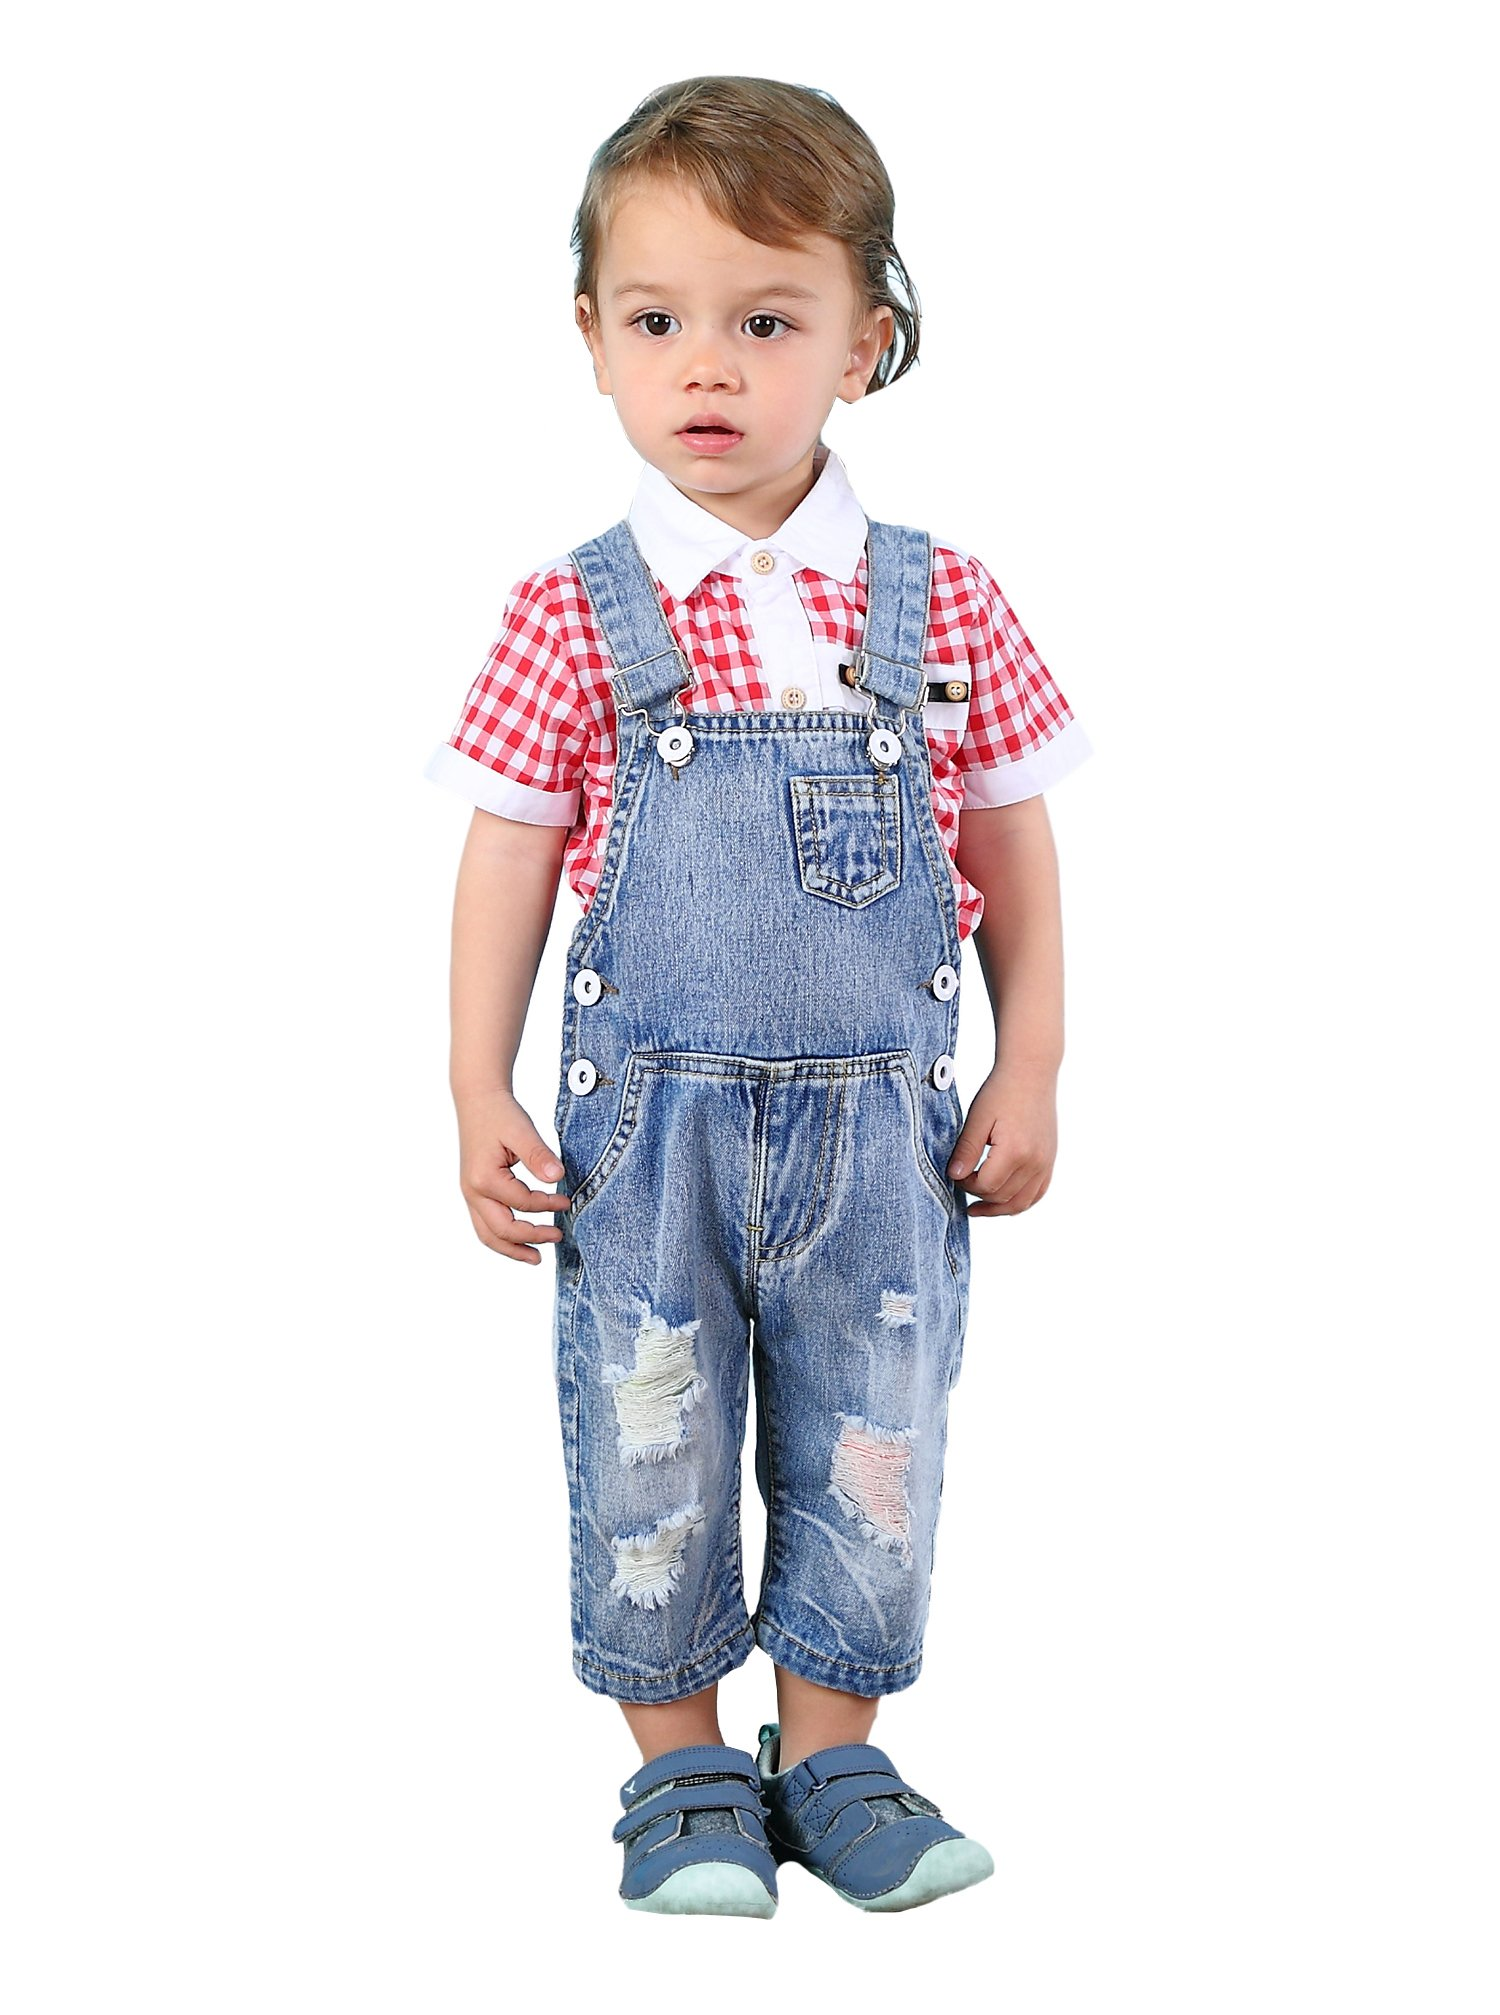 Kidscool Baby & Toddler Girls/Boys Colorful Ripped Hole Summer Jeans Shortalls,Light Blue,4-5 Years